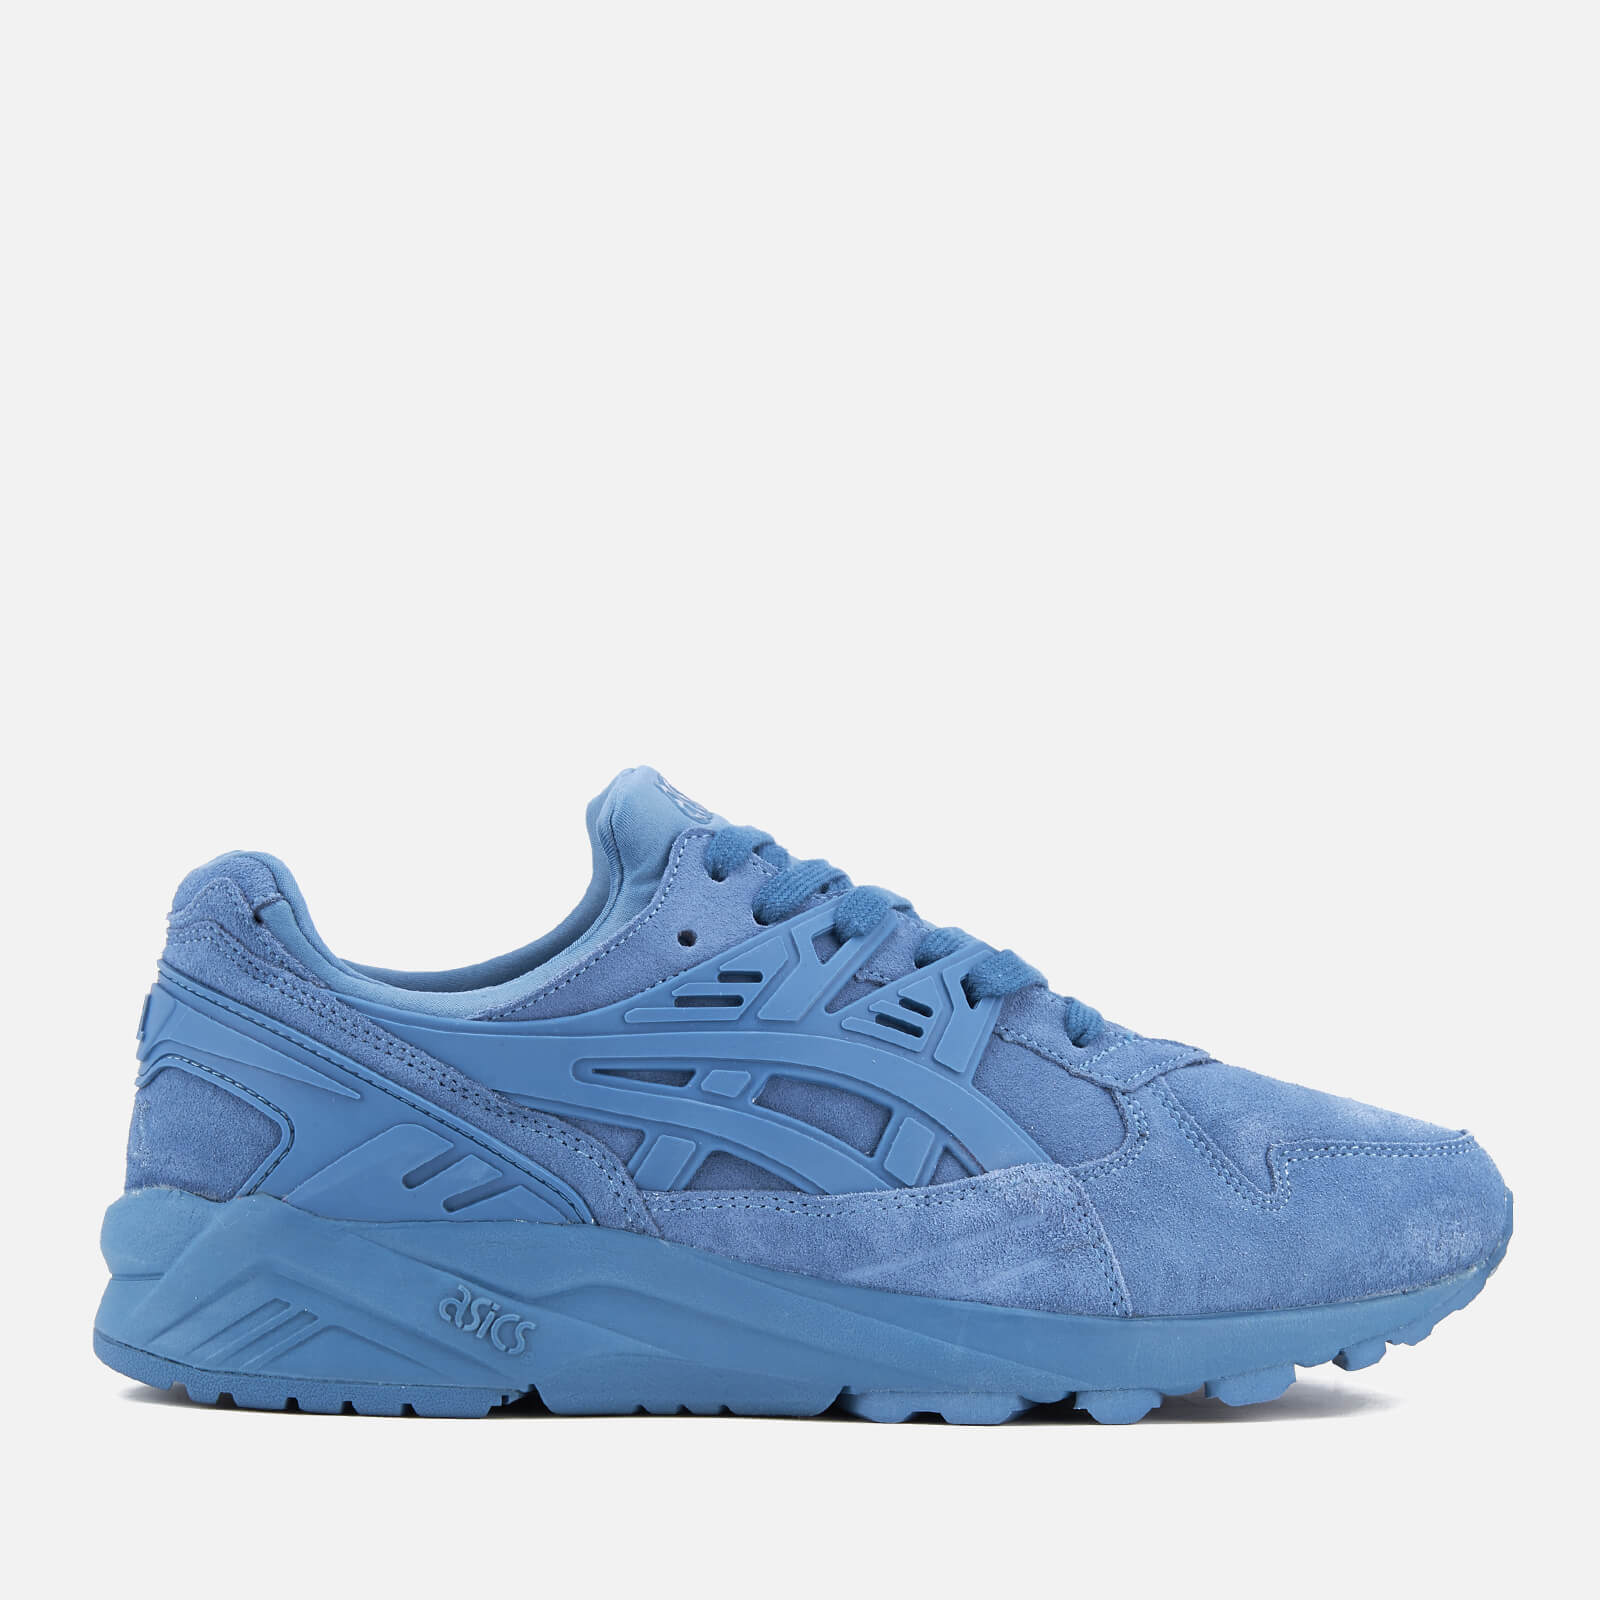 brand new b0b15 20719 Asics Lifestyle Men's Gel-Kayano Evo Suede Trainers - Pigeon Blue/Pigeon  Blue